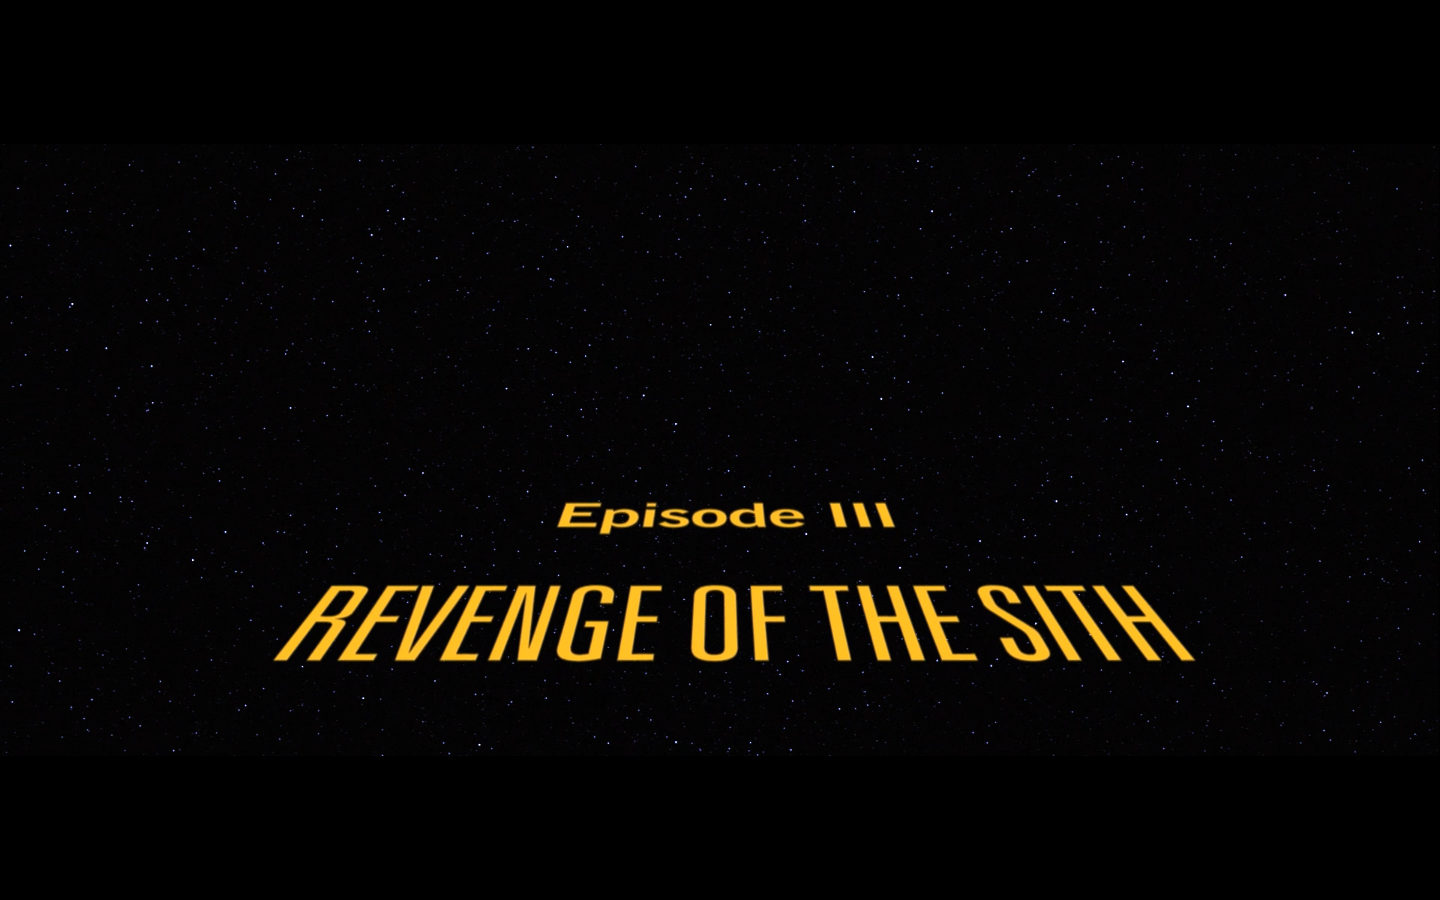 Star Wars Episode Iii Revenge Of The Sith B Movie Blog